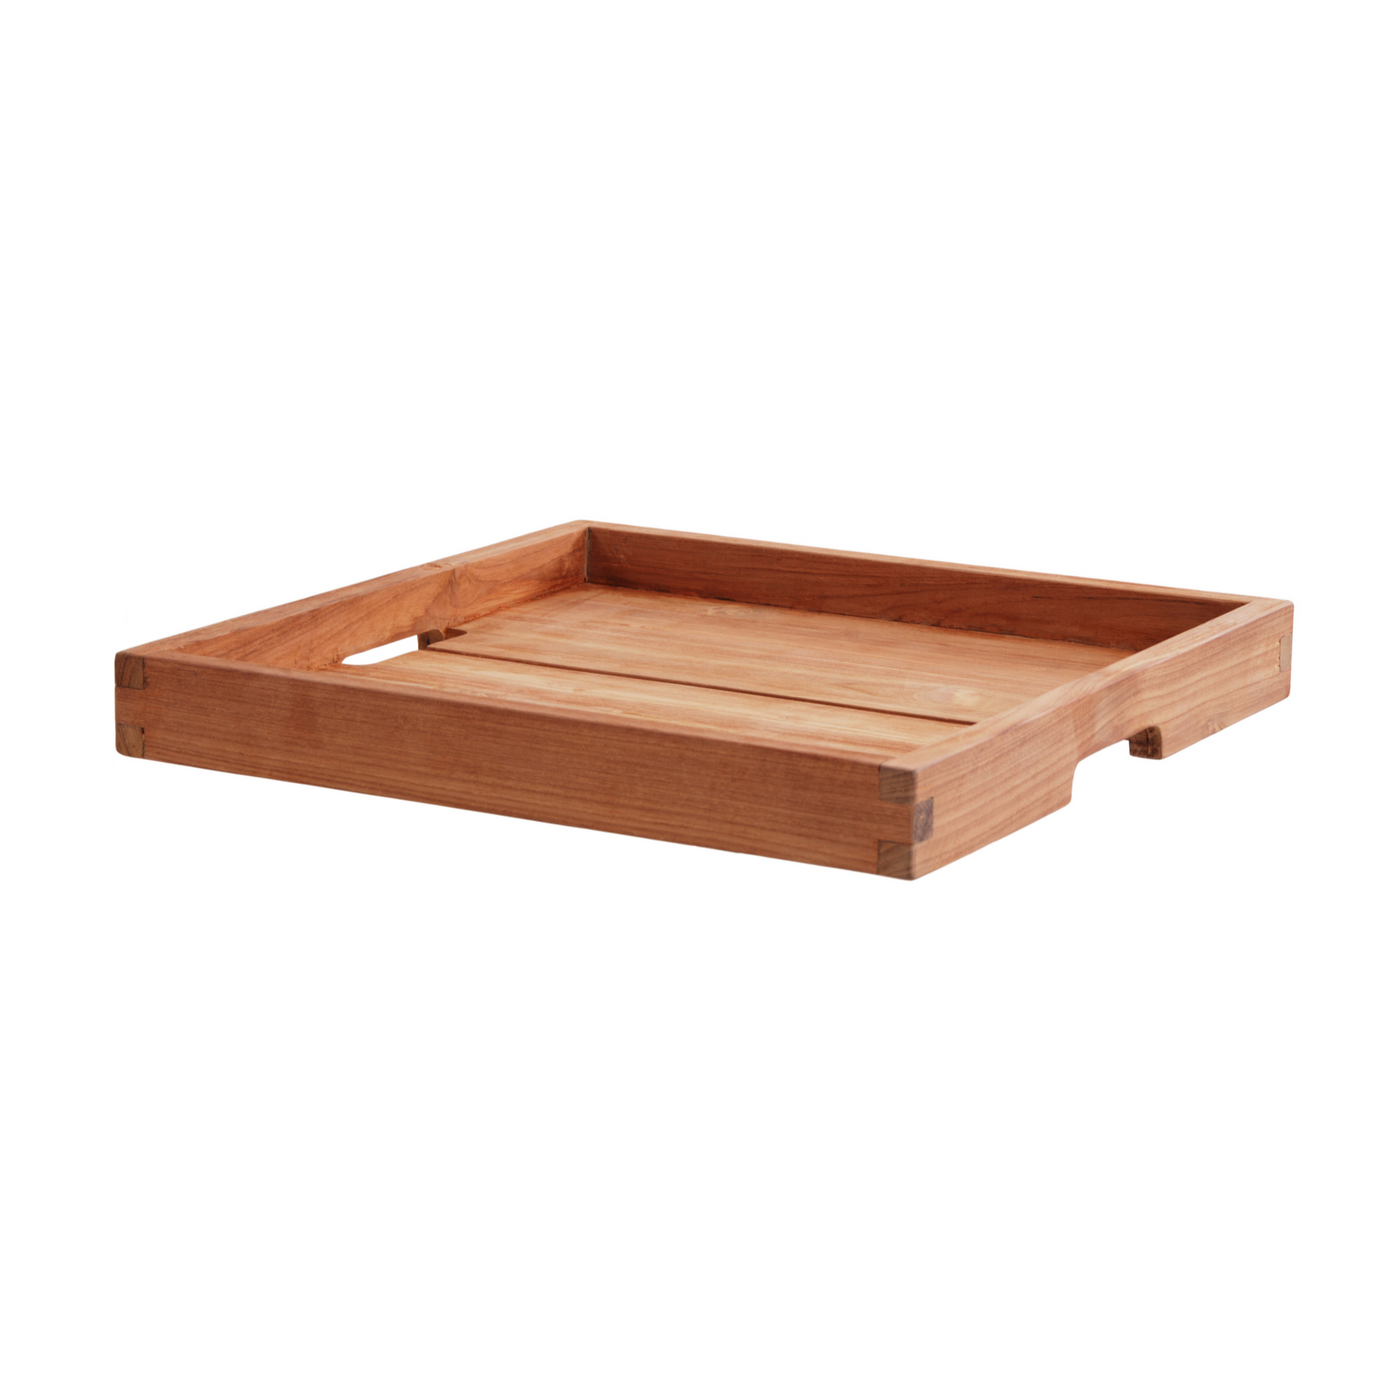 NEW Leonardo Teak Serving Tray